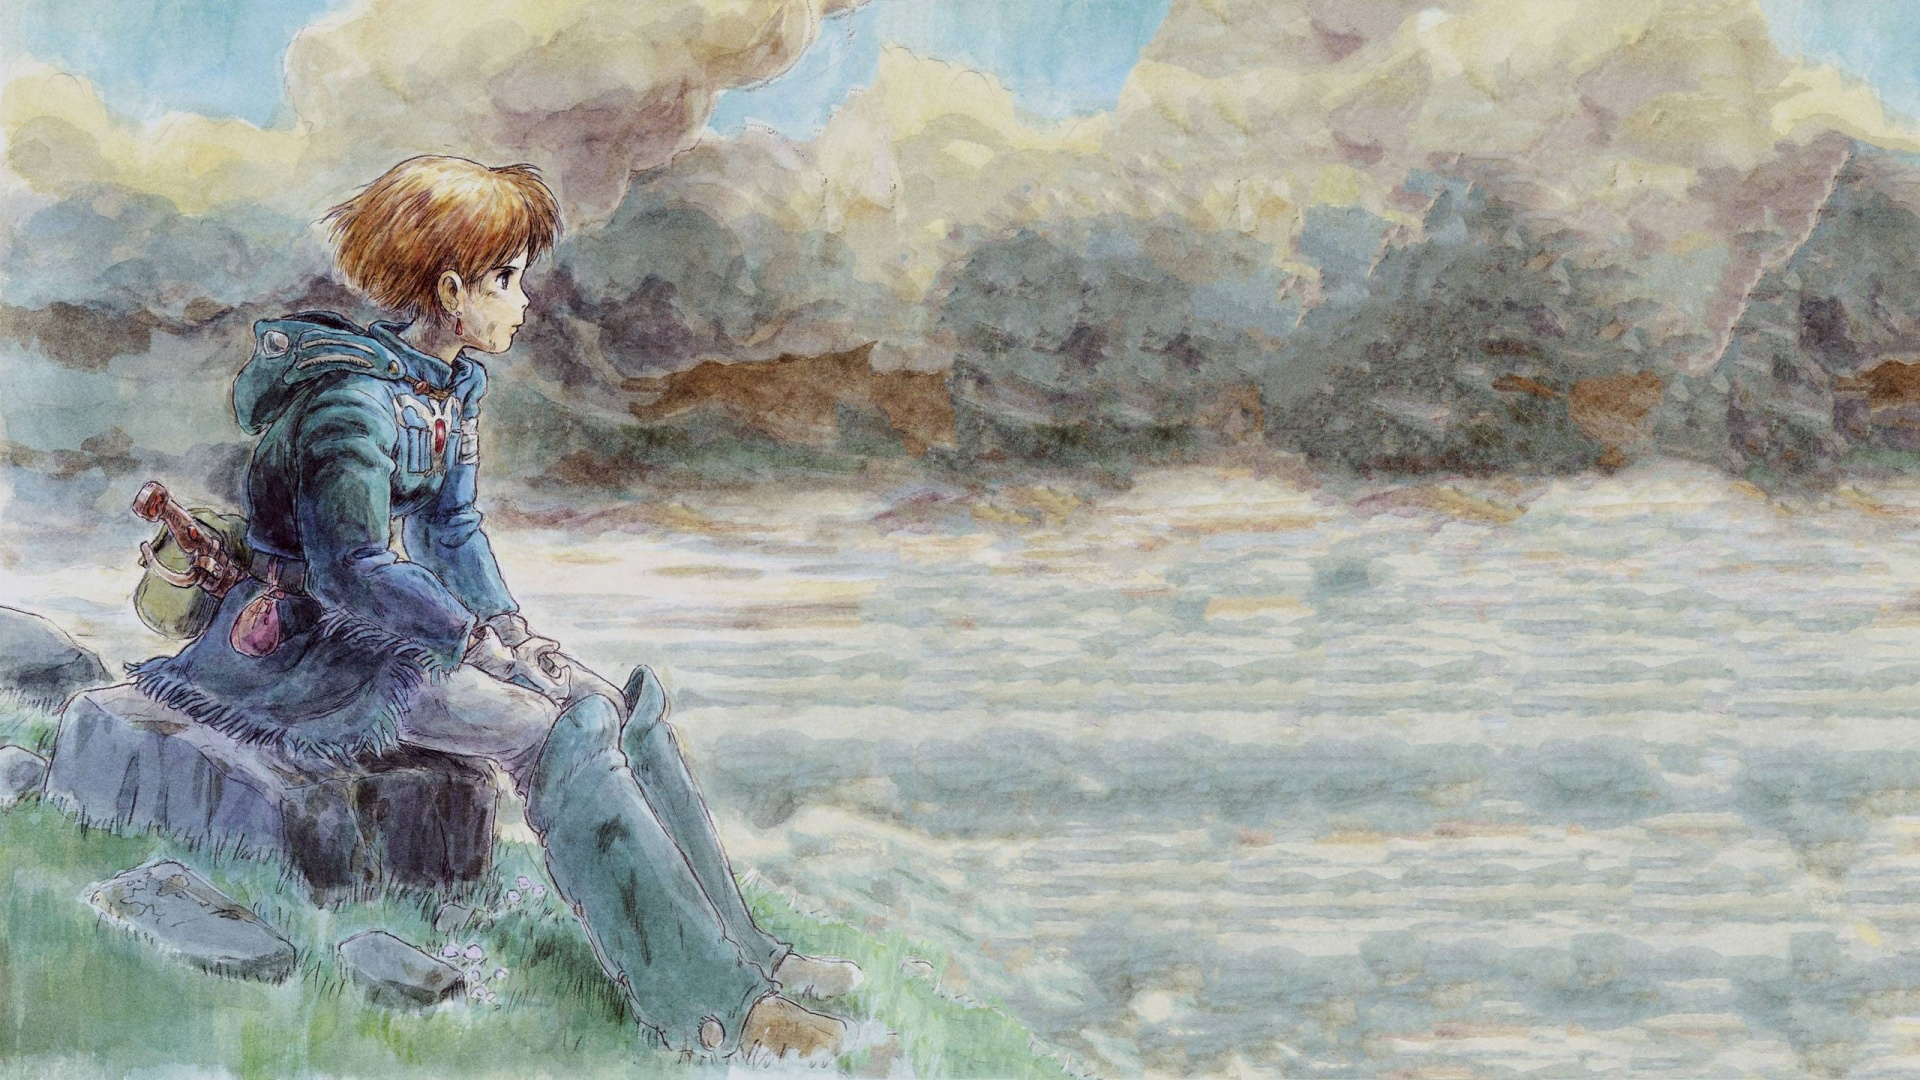 1920x1080 Nausicaa of the Valley of the Wind desktop PC ...